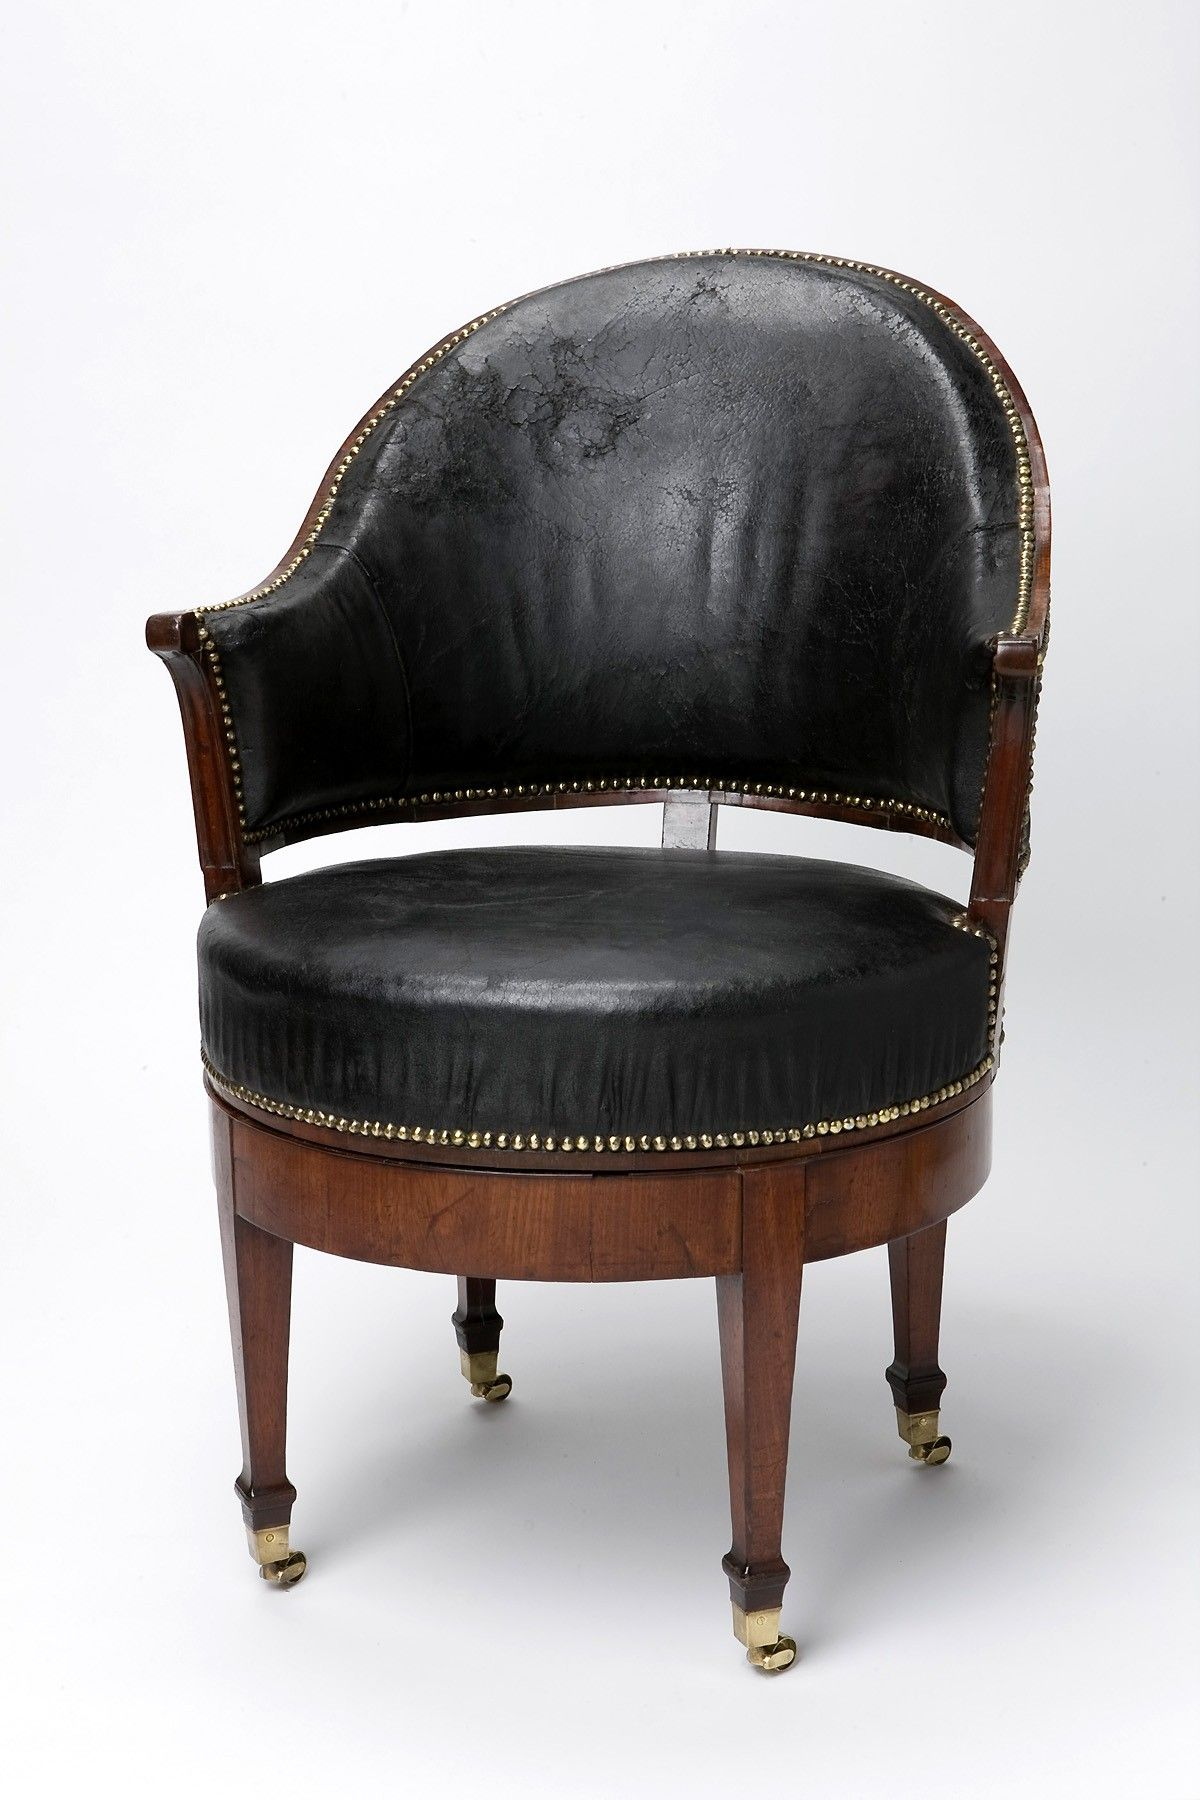 Beau Washingtonu0027s Presidential Chair Top Ten Objects In Mount Vernonu0027s  Collection · George Washingtonu0027s Mount Vernon